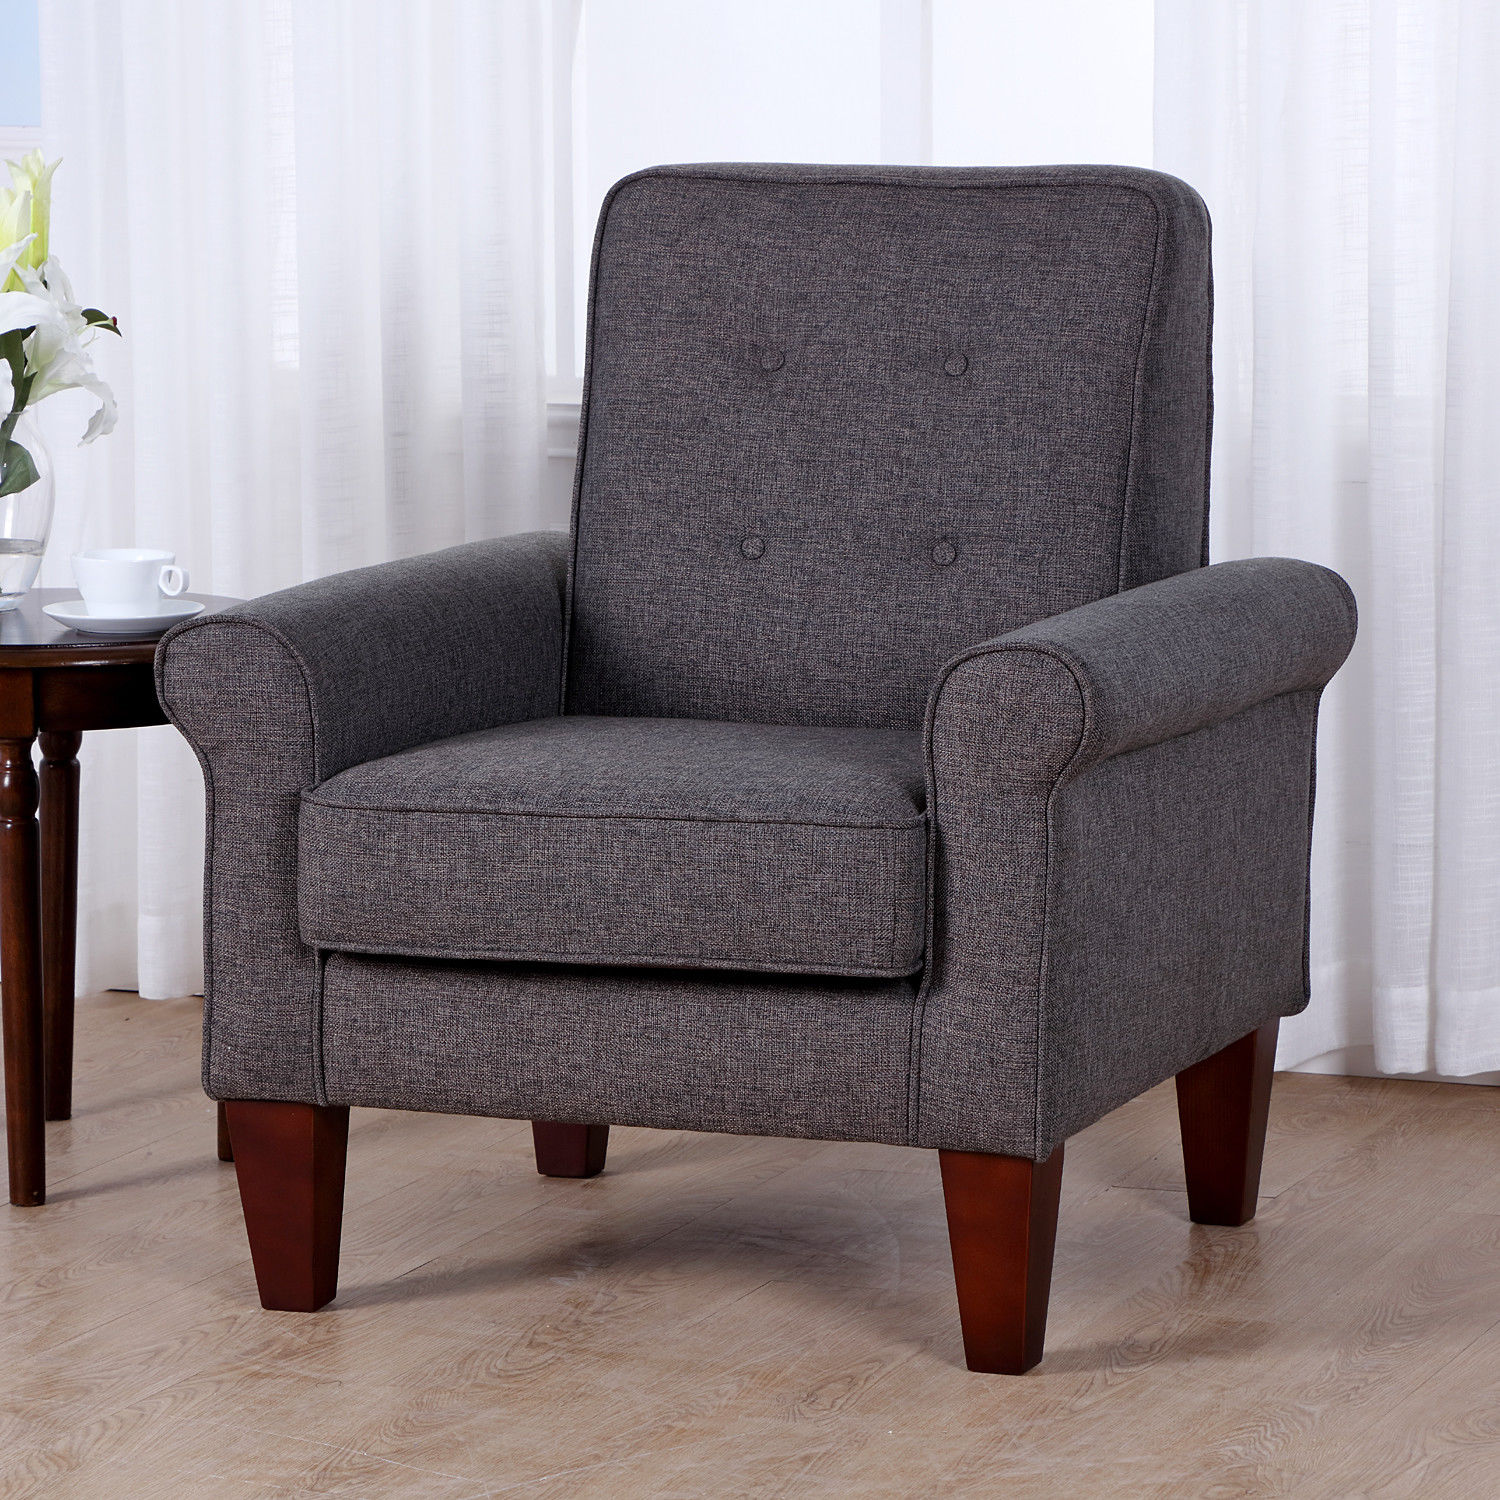 Armchairs & Accent Chairs Accent Tufted Back Linen Upholstered Club Chair Armchair